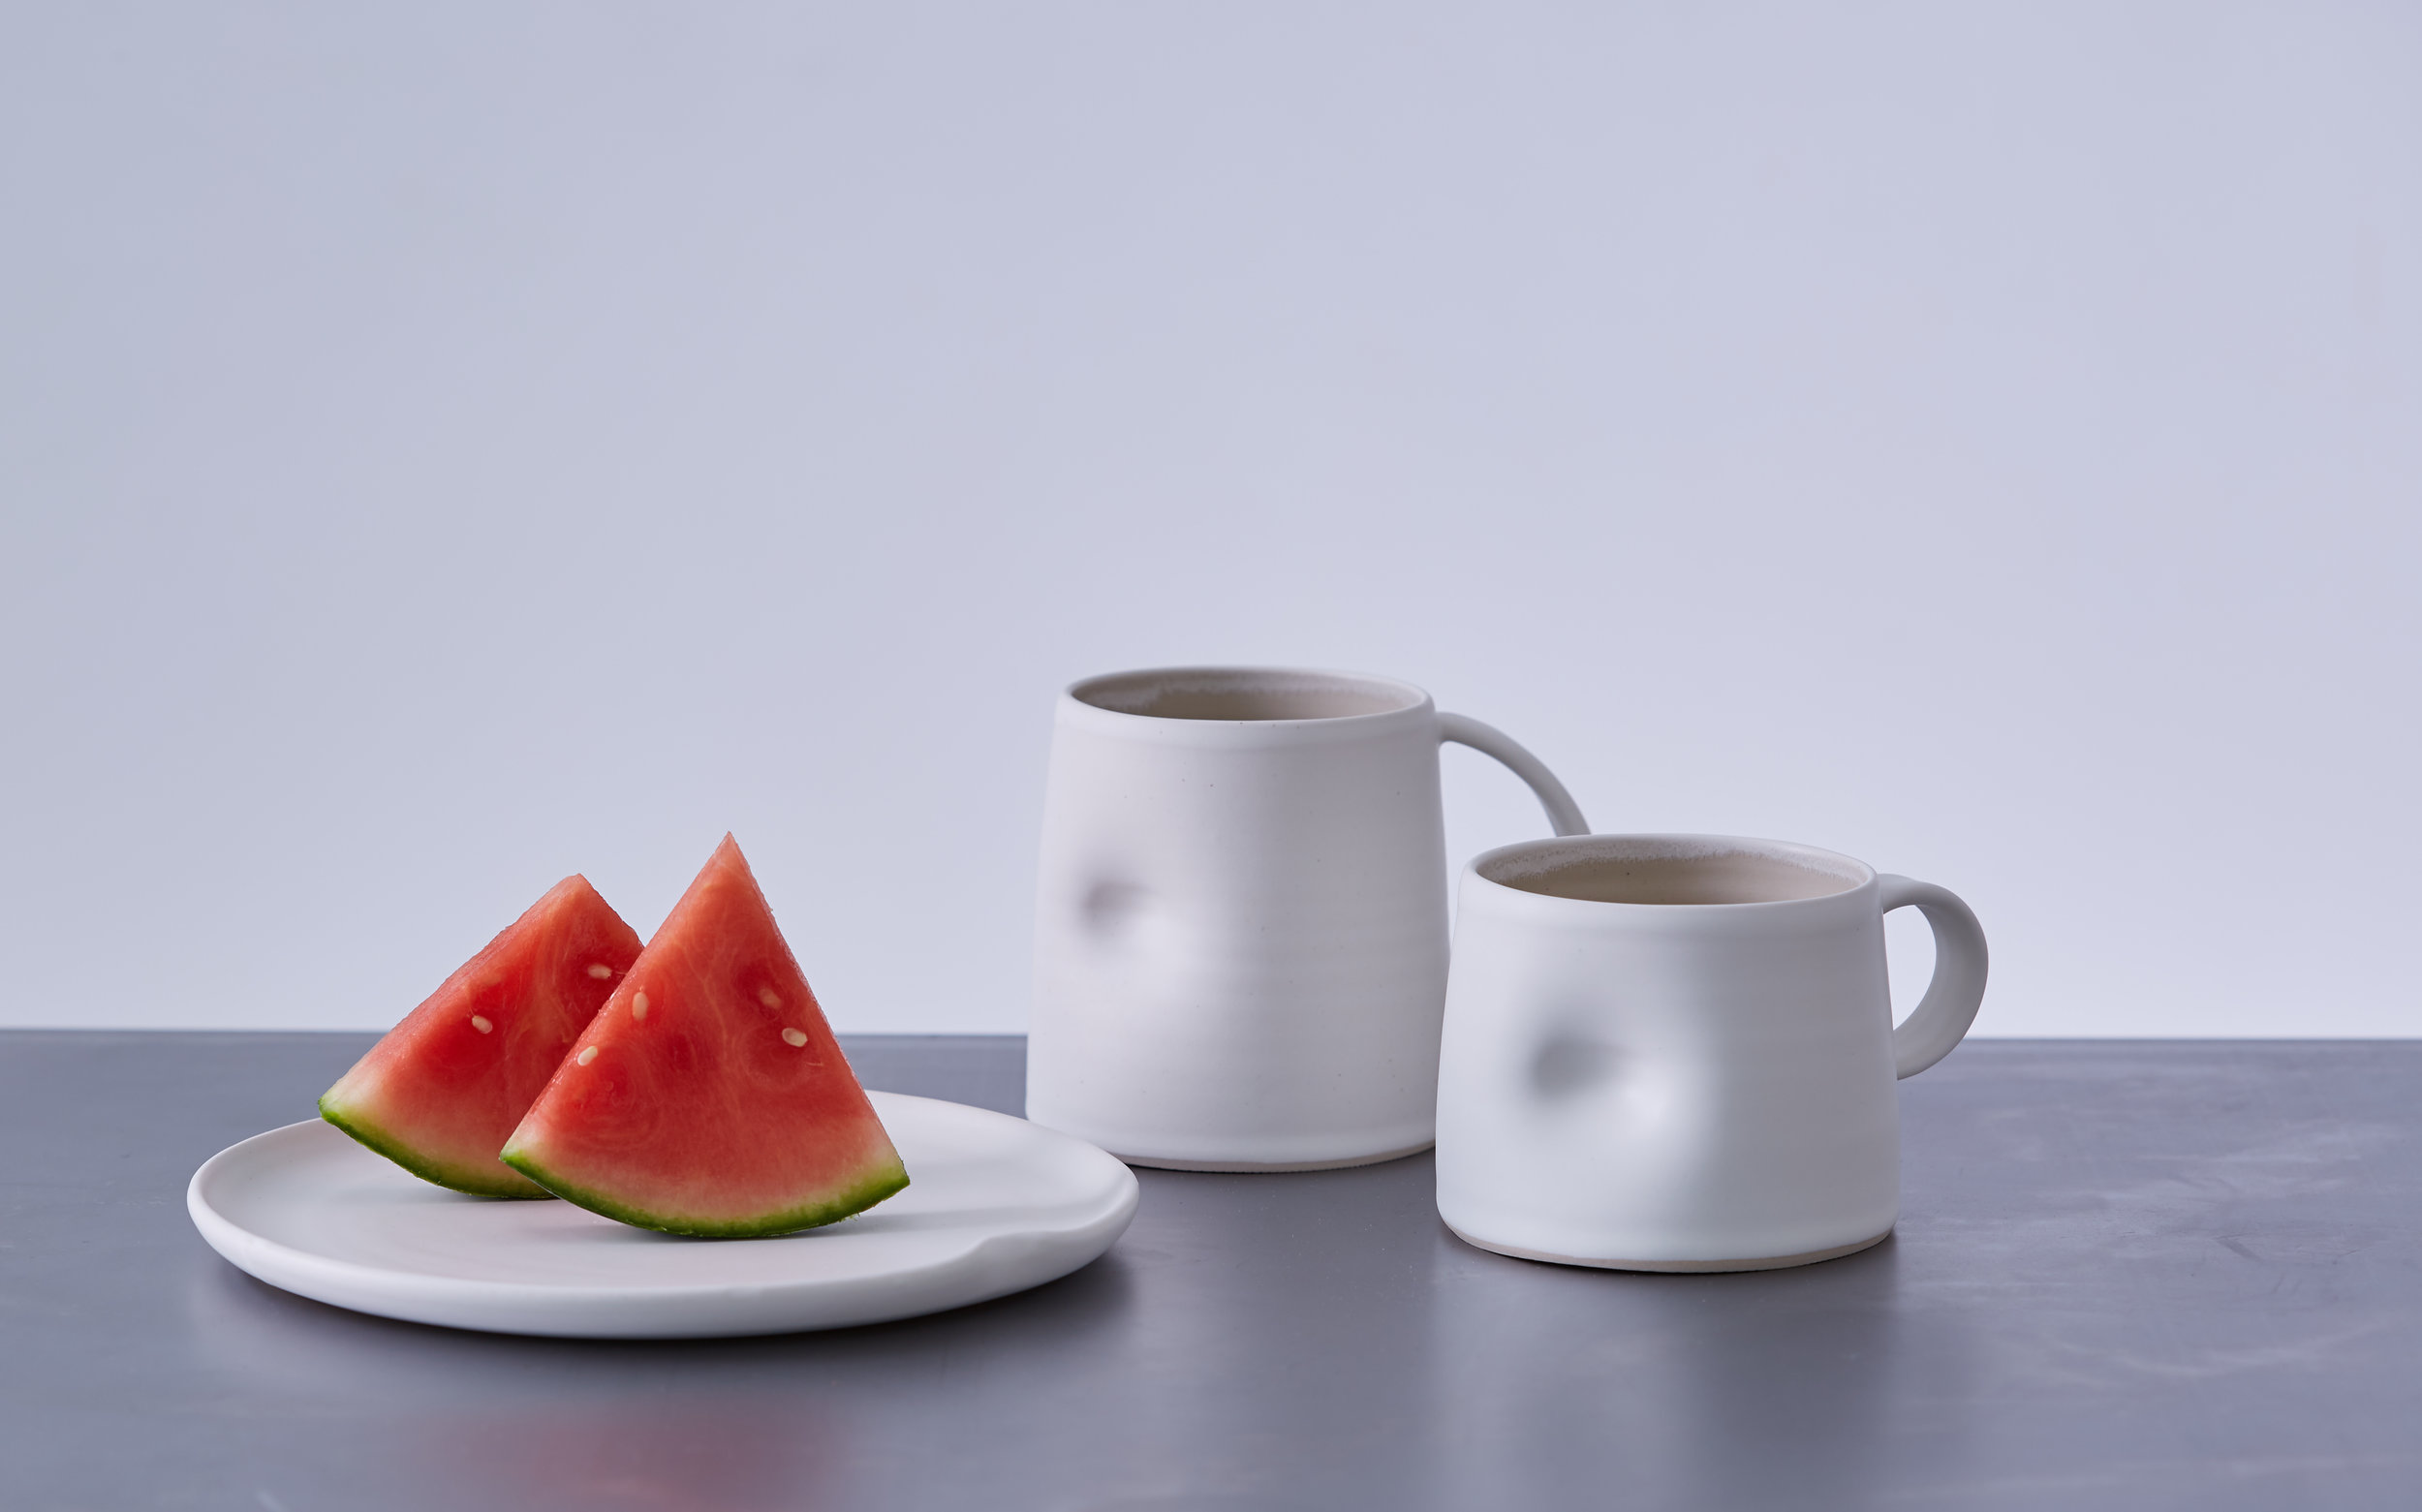 Emma-Lacey-Everyday-Plate-Large-Mug-and-Short-Cup-White.jpg